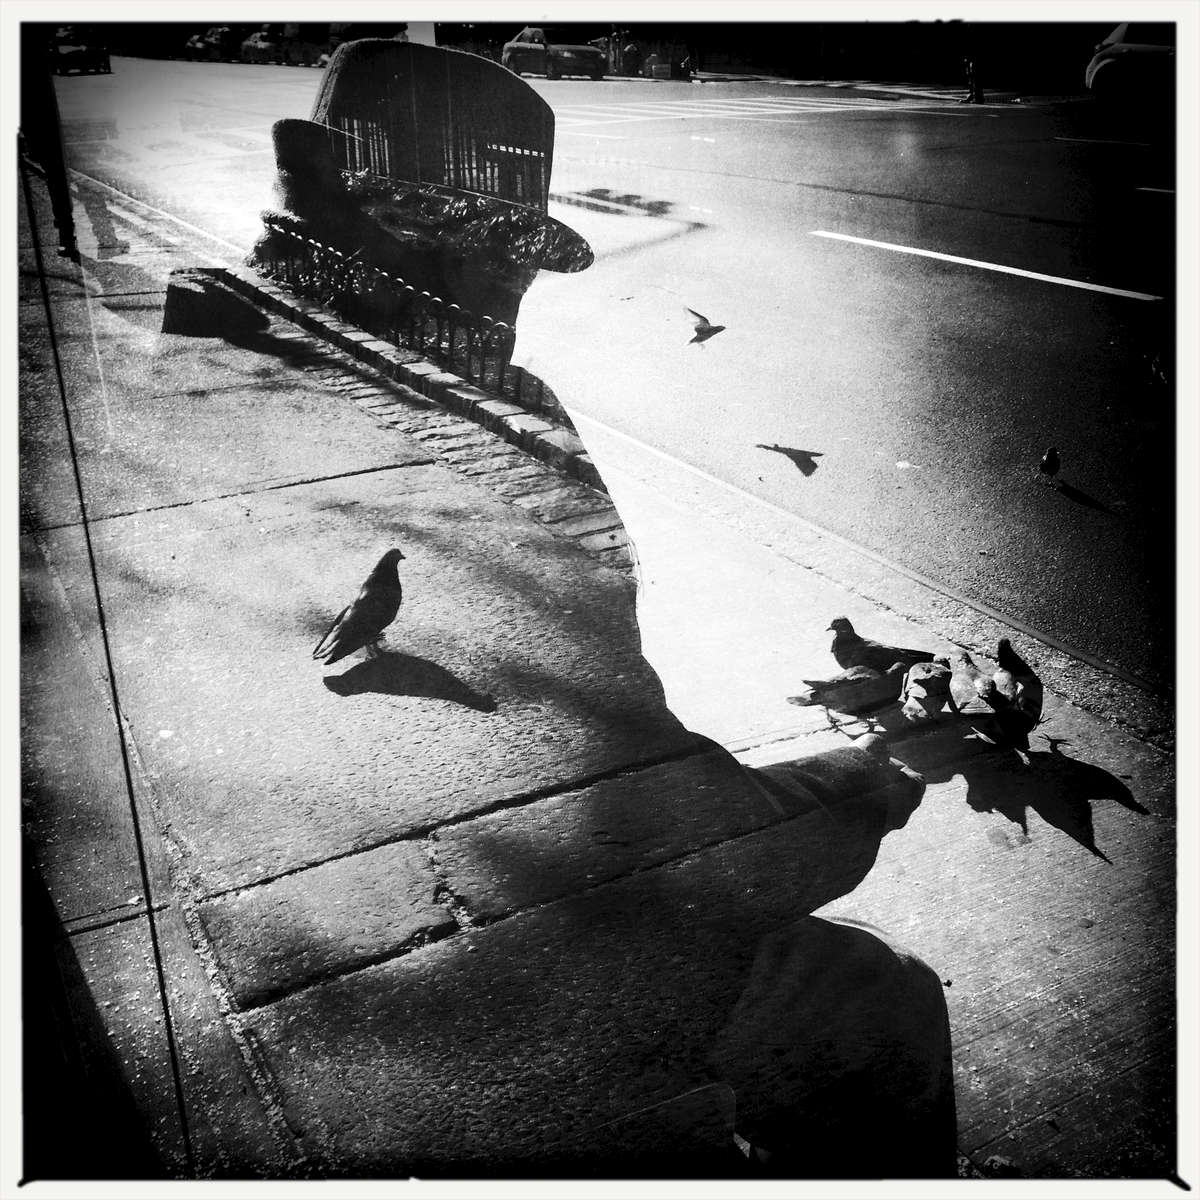 A man and Pigeons -- in the reflection, Upper West Side, Jan. 2015.